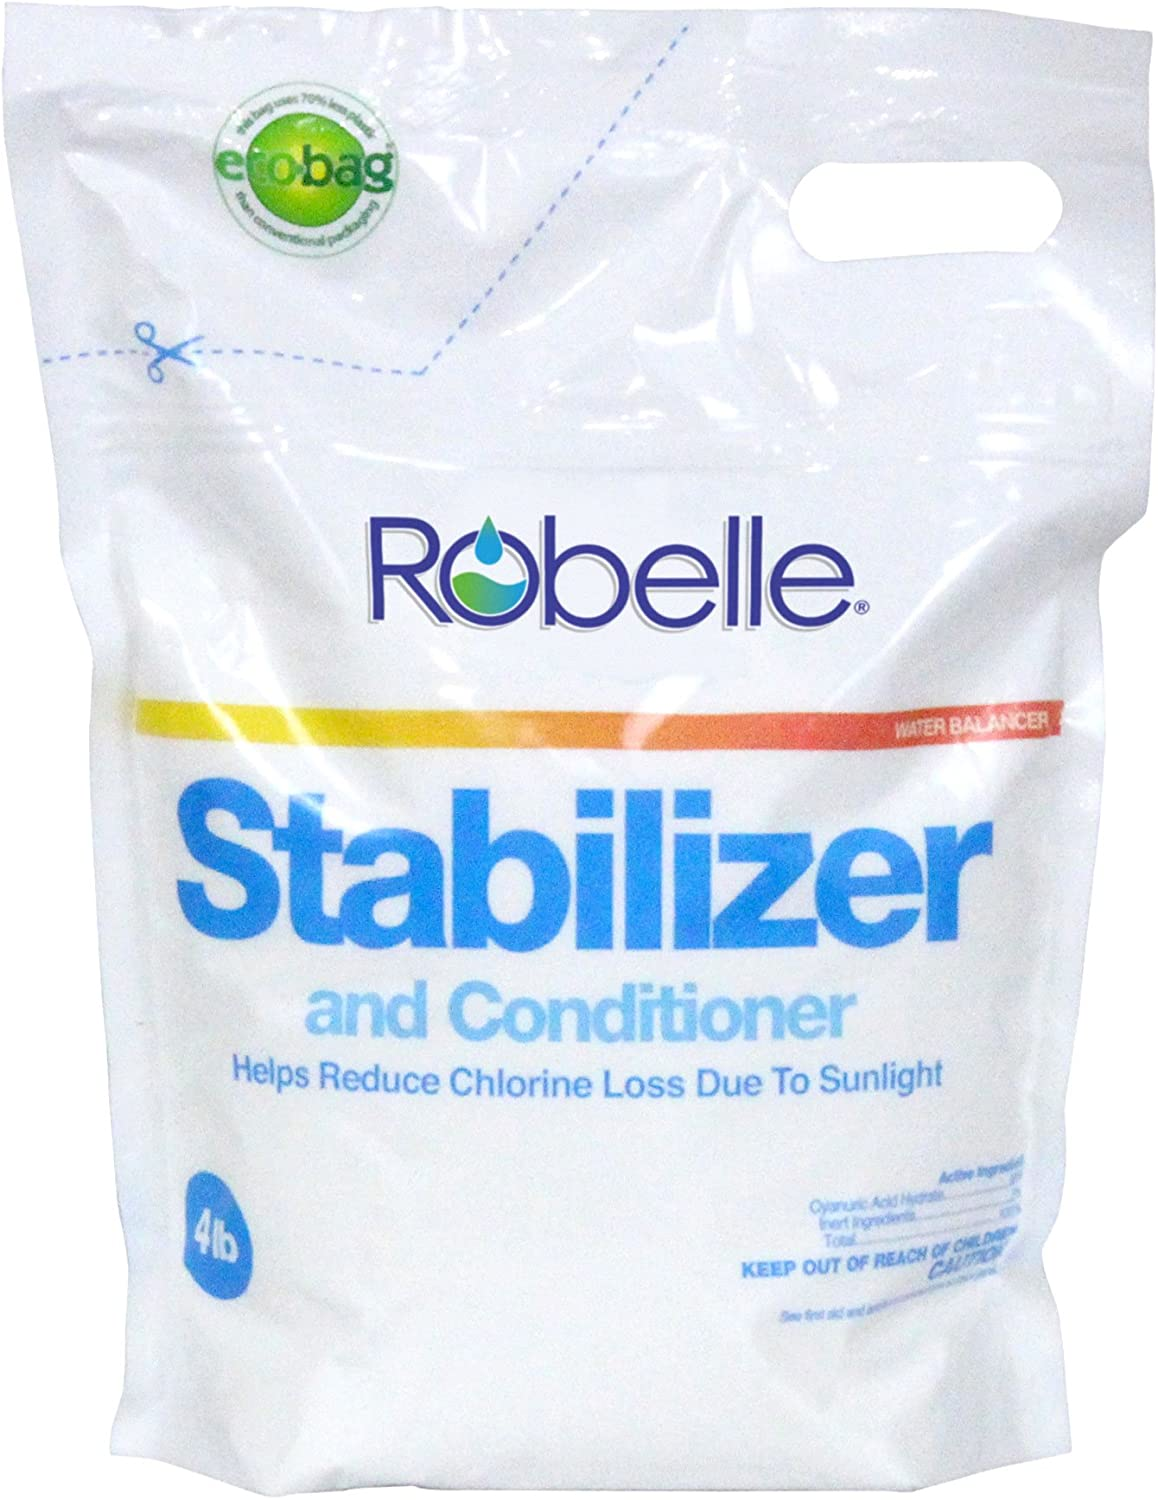 Robelle 2604B Stabilizer for Pools Swimming 4 Challenge the lowest price of Japan lb Super intense SALE